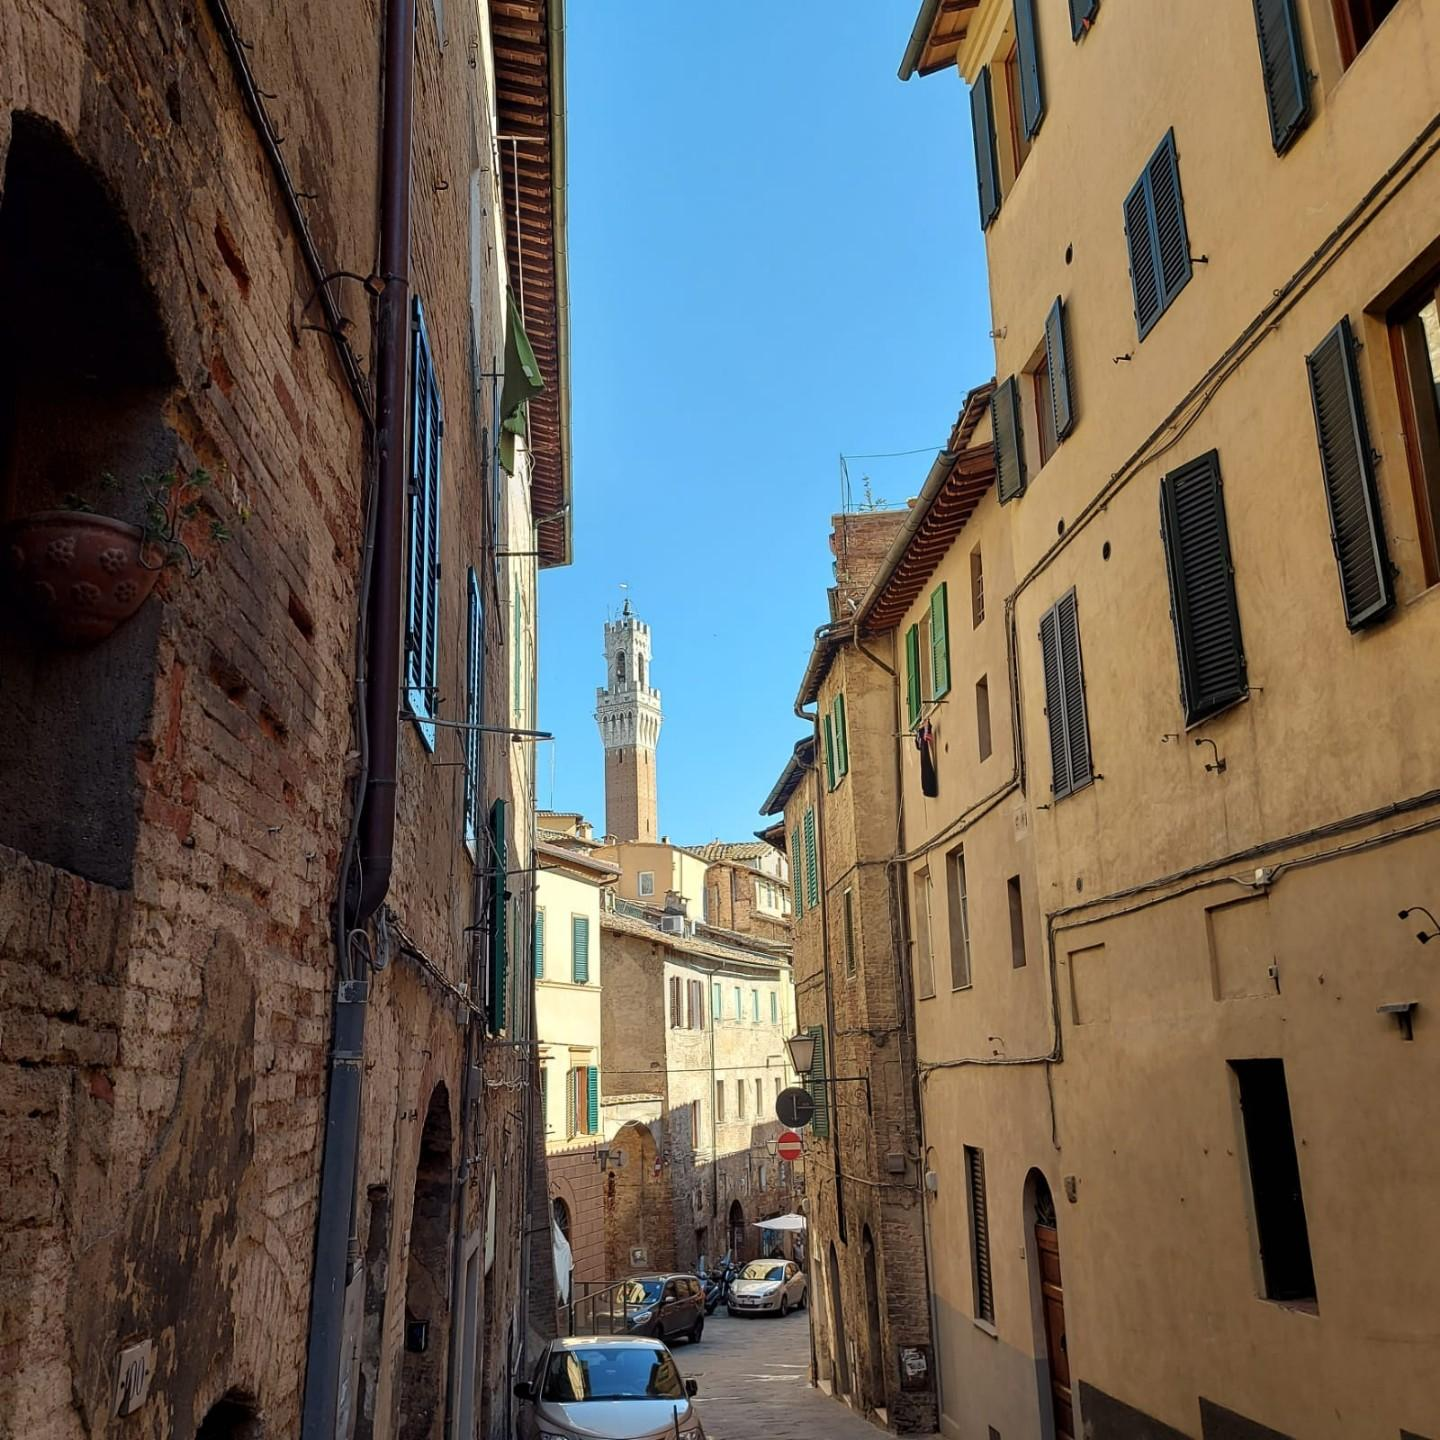 Loft for sale in Siena